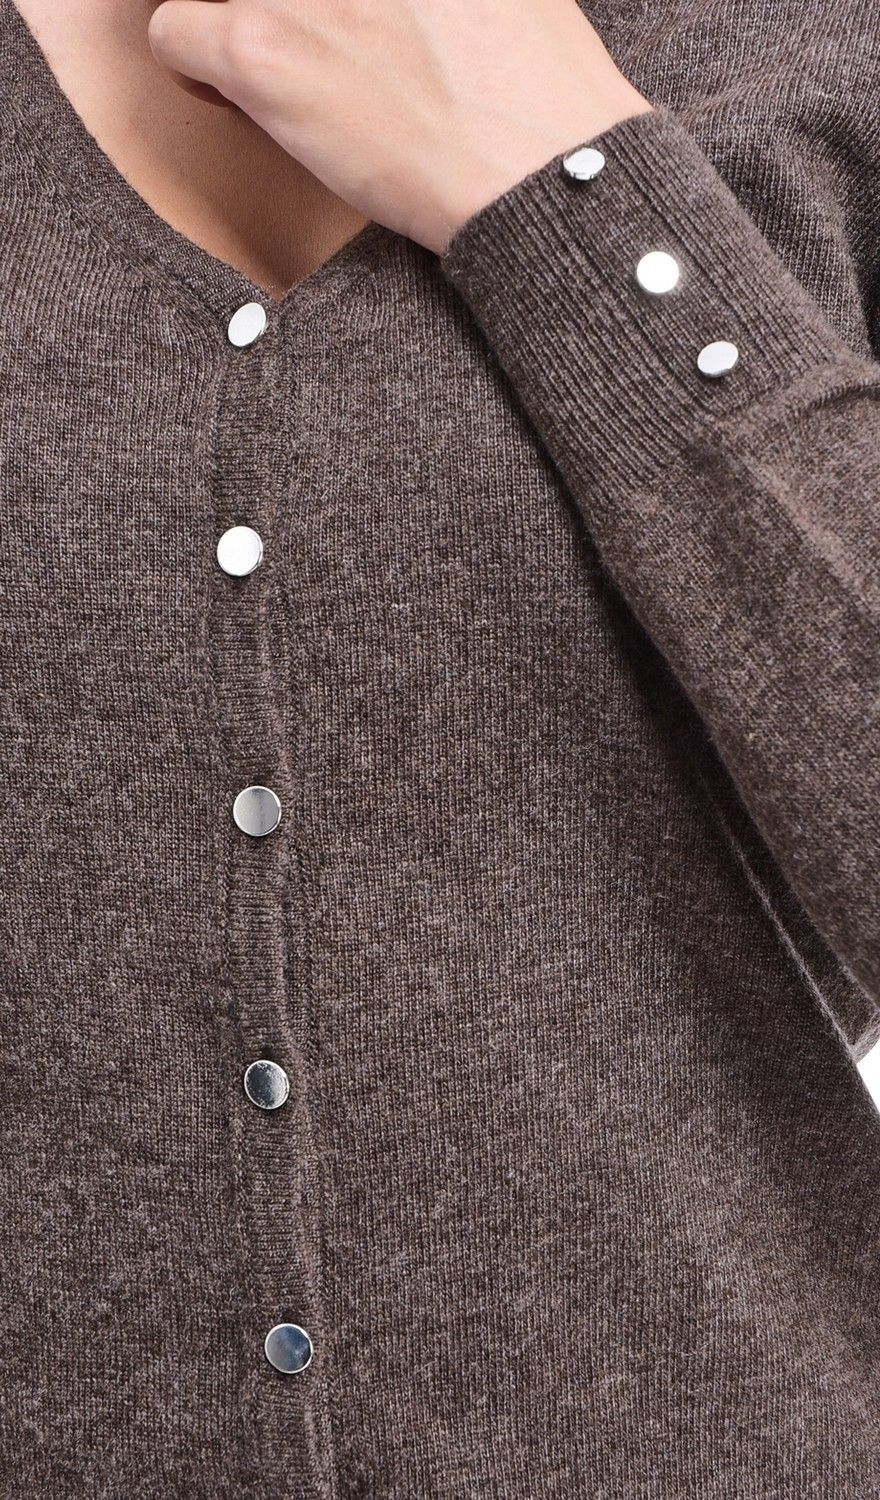 C&JO V-neck Cardigan with Silver Buttons in Brown